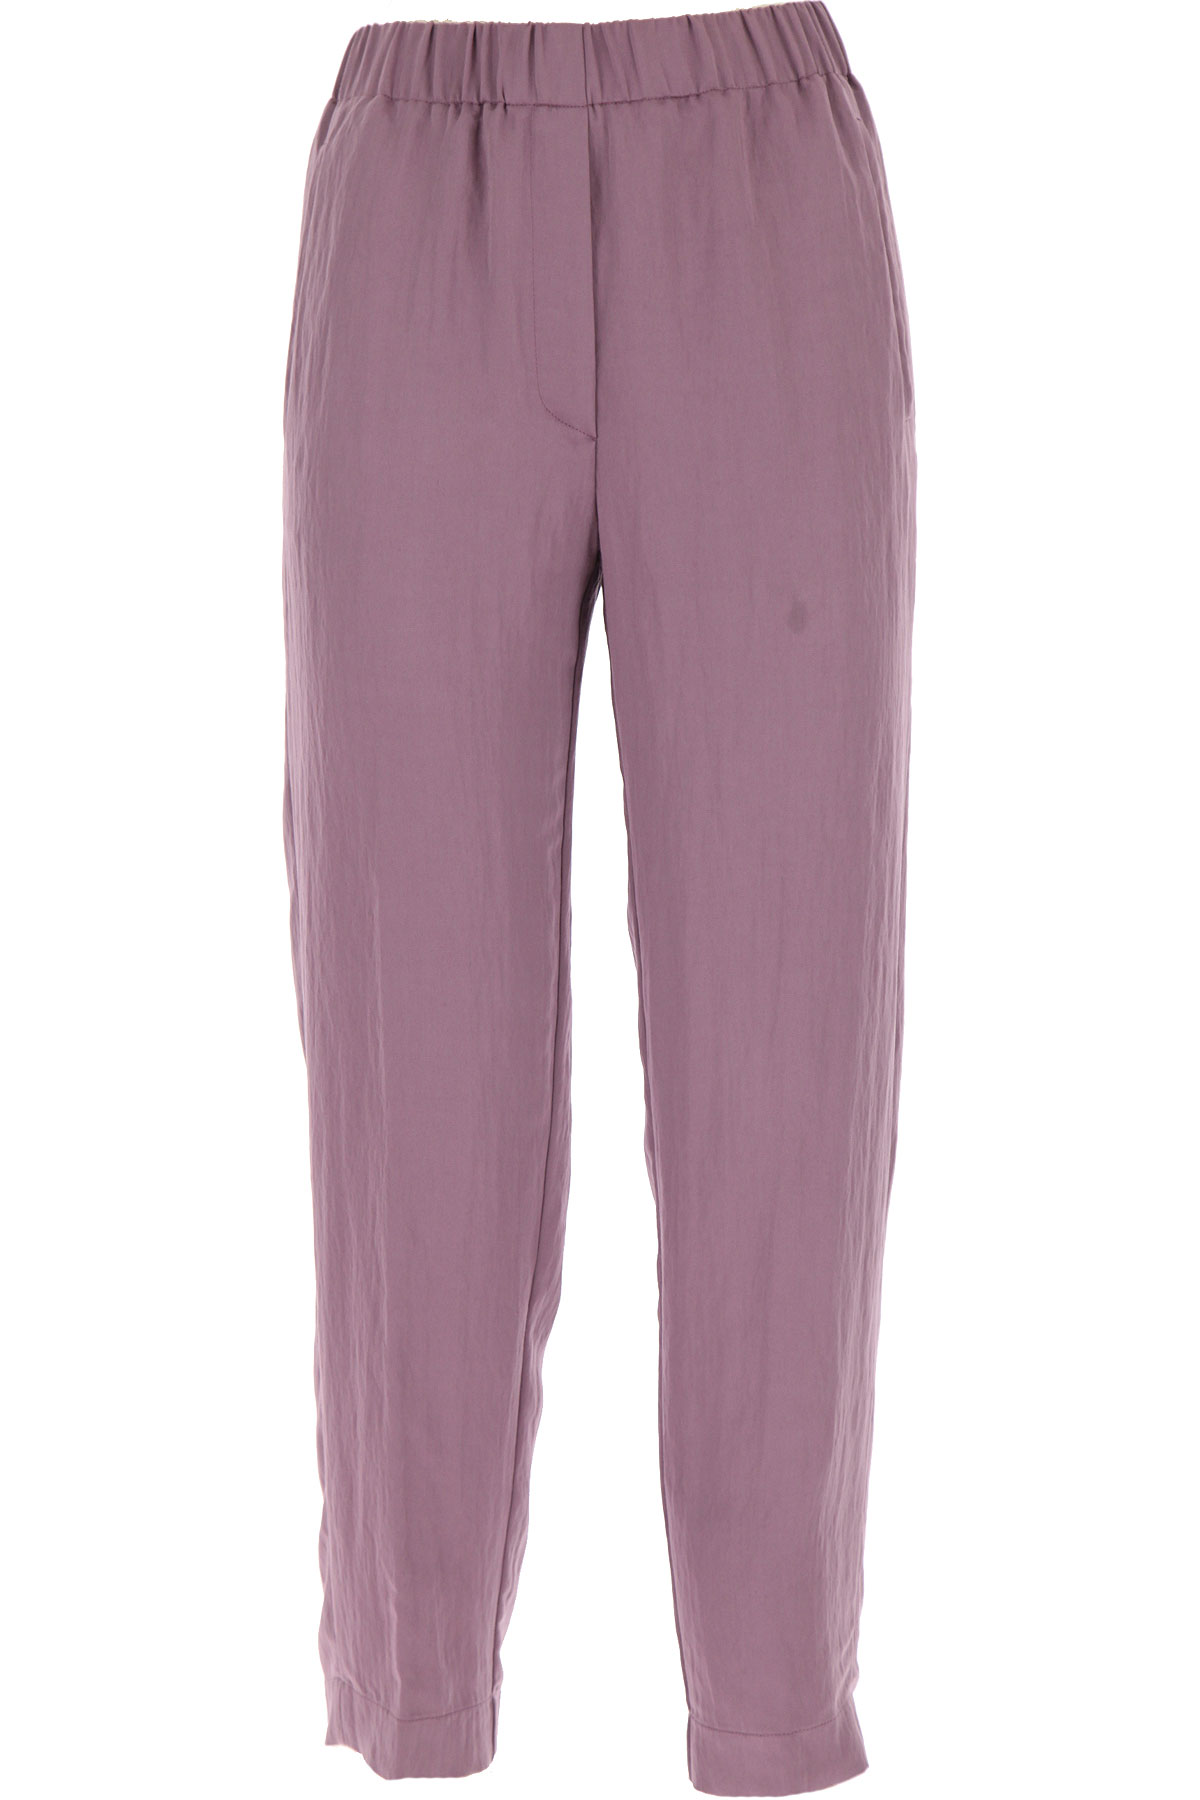 Forte Forte Pants for Women On Sale, Mauve pink, Modal, 2019, 0 - XS - IT 38 1 - S - IT 40 2 - M - IT 42